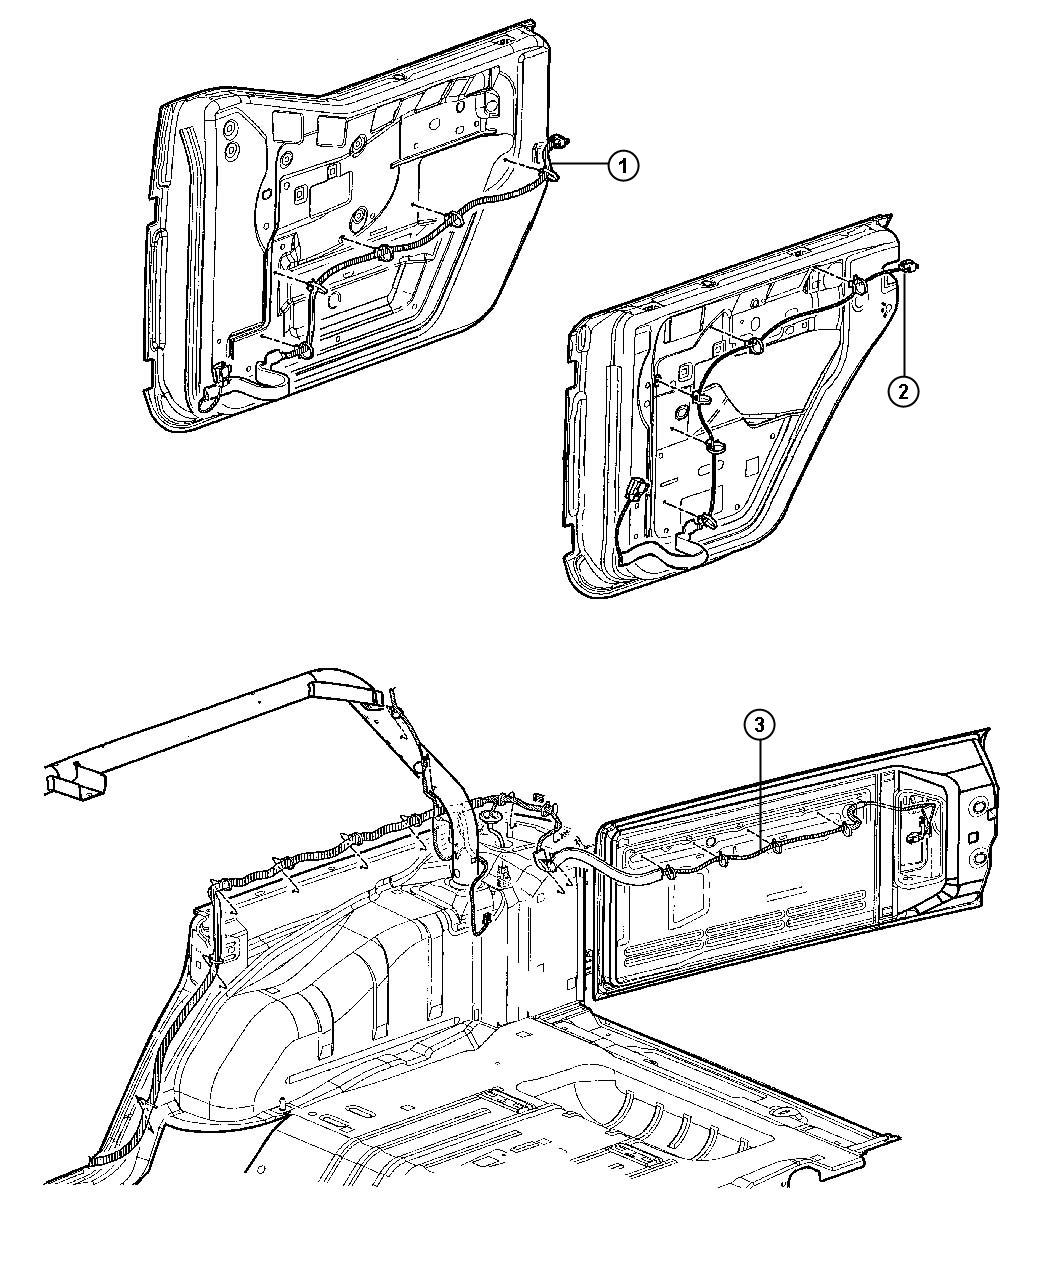 2013 jeep wrangler unlimited wiring diagram